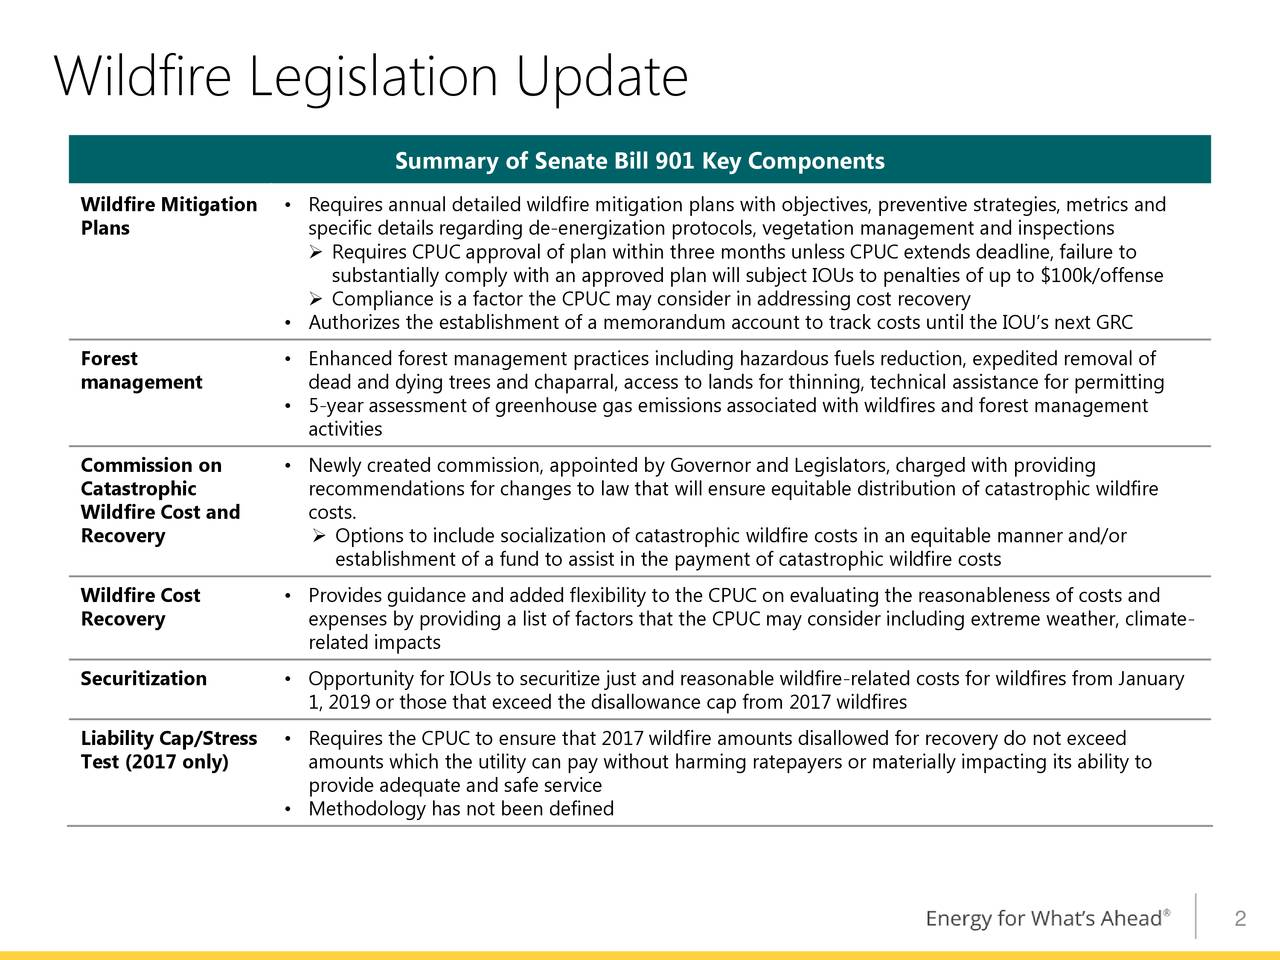 Summary of Senate Bill 901 Key Components Wildfire Mitigation • Requires annual detailed wildfire mitigation plans with objectives, preventive strategies, metrics and Plans specific details regarding de-energization protocols, vegetation management and inspections  Requires CPUC approval of plan within three months unless CPUC extends deadline, failure to substantially comply with an approved plan will subject IOUs to penalties of up to $100k/offense  Compliance is a factor the CPUC may consider in addressing cost recovery • Authorizes the establishment of a memorandum account to track costs until the IOU's next GRC Forest • Enhanced forest management practices including hazardous fuels reduction, expedited removal of management dead and dying trees and chaparral, access to lands for thinning, technical assistance for permitting • 5-year assessment of greenhouse gas emissions associated with wildfires and forest management activities Commission on • Newly created commission, appointed by Governor and Legislators, charged with providing Catastrophic recommendations for changes to law that will ensure equitable distribution of catastrophic wildfire Wildfire Cost and costs. Recovery  Options to include socialization of catastrophic wildfire costs in an equitable manner and/or establishment of a fund to assist in the payment of catastrophic wildfire costs Wildfire Cost • Provides guidance and added flexibility to the CPUC on evaluating the reasonableness of costs and Recovery expenses by providing a list of factors that the CPUC may consider including extreme weather, climate- related impacts Securitization • Opportunity for IOUs to securitize just and reasonable wildfire-related costs for wildfires from January 1, 2019 or those that exceed the disallowance cap from 2017 wildfires Liability Cap/Stress • Requires the CPUC to ensure that 2017 wildfire amounts disallowed for recovery do not exceed Test (2017 only) amounts which the utility can pay without harming ratepayer